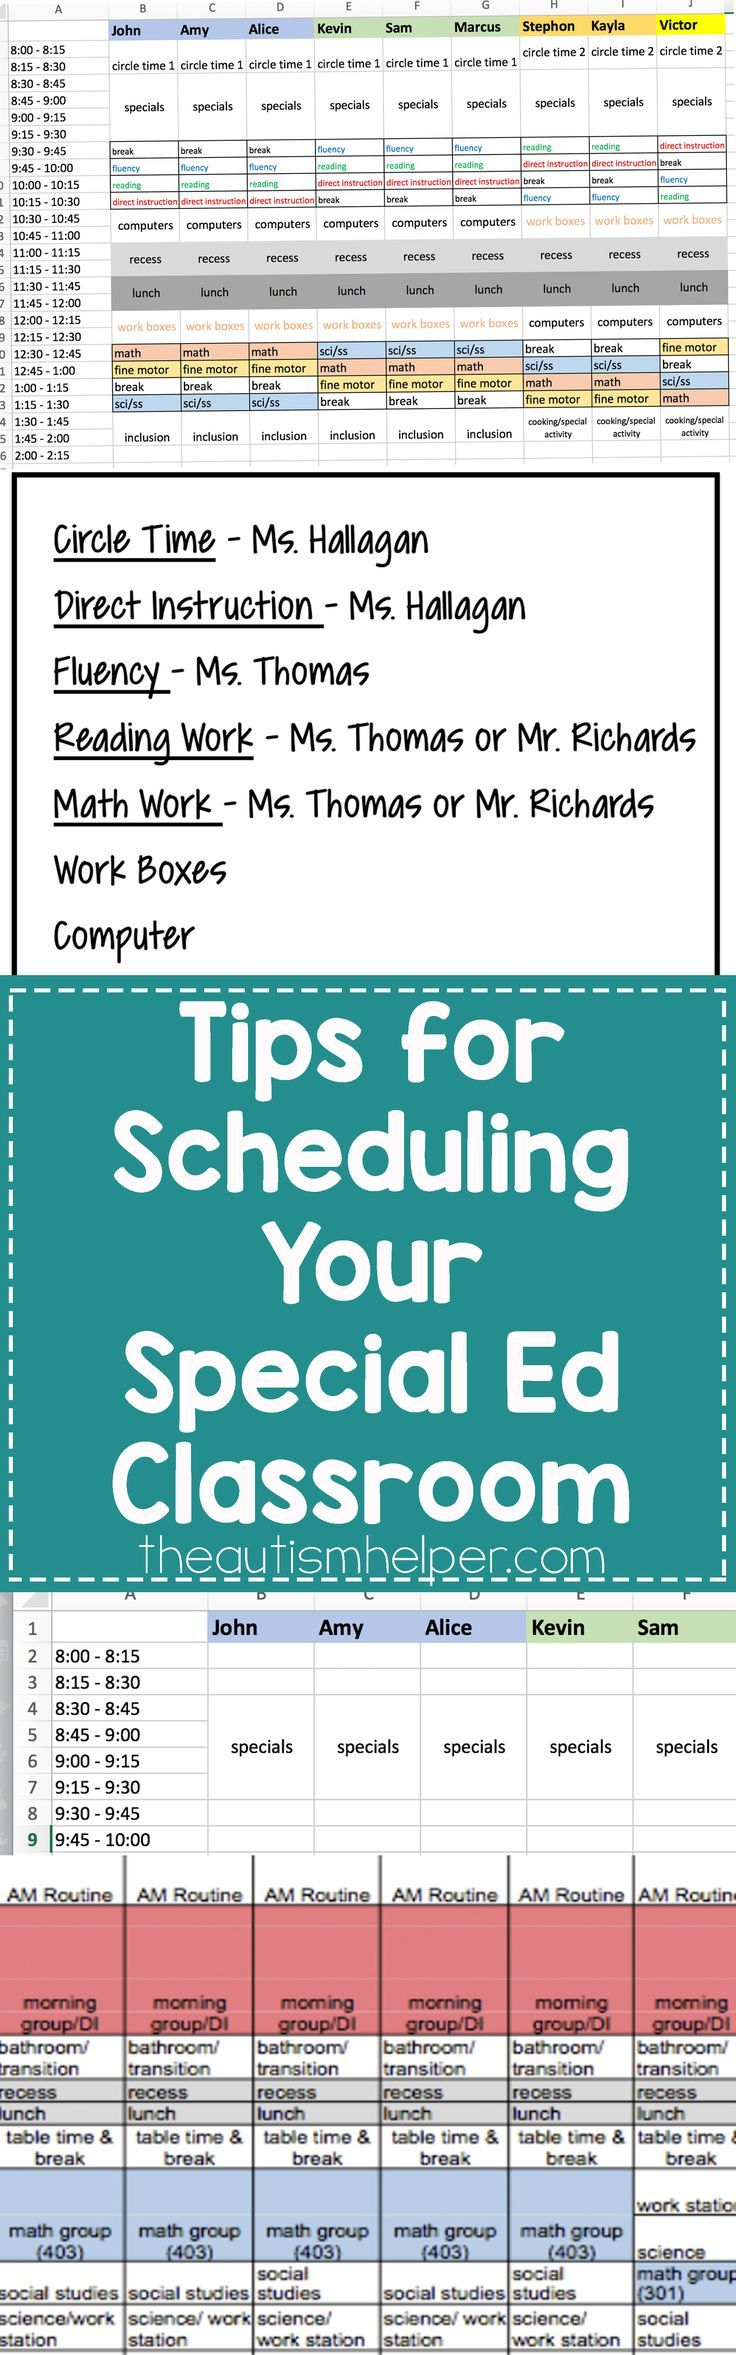 Helpful Tips & Steps for Scheduling Your Special Education Classroom Today on the Blog! From http://theautismhelper.com